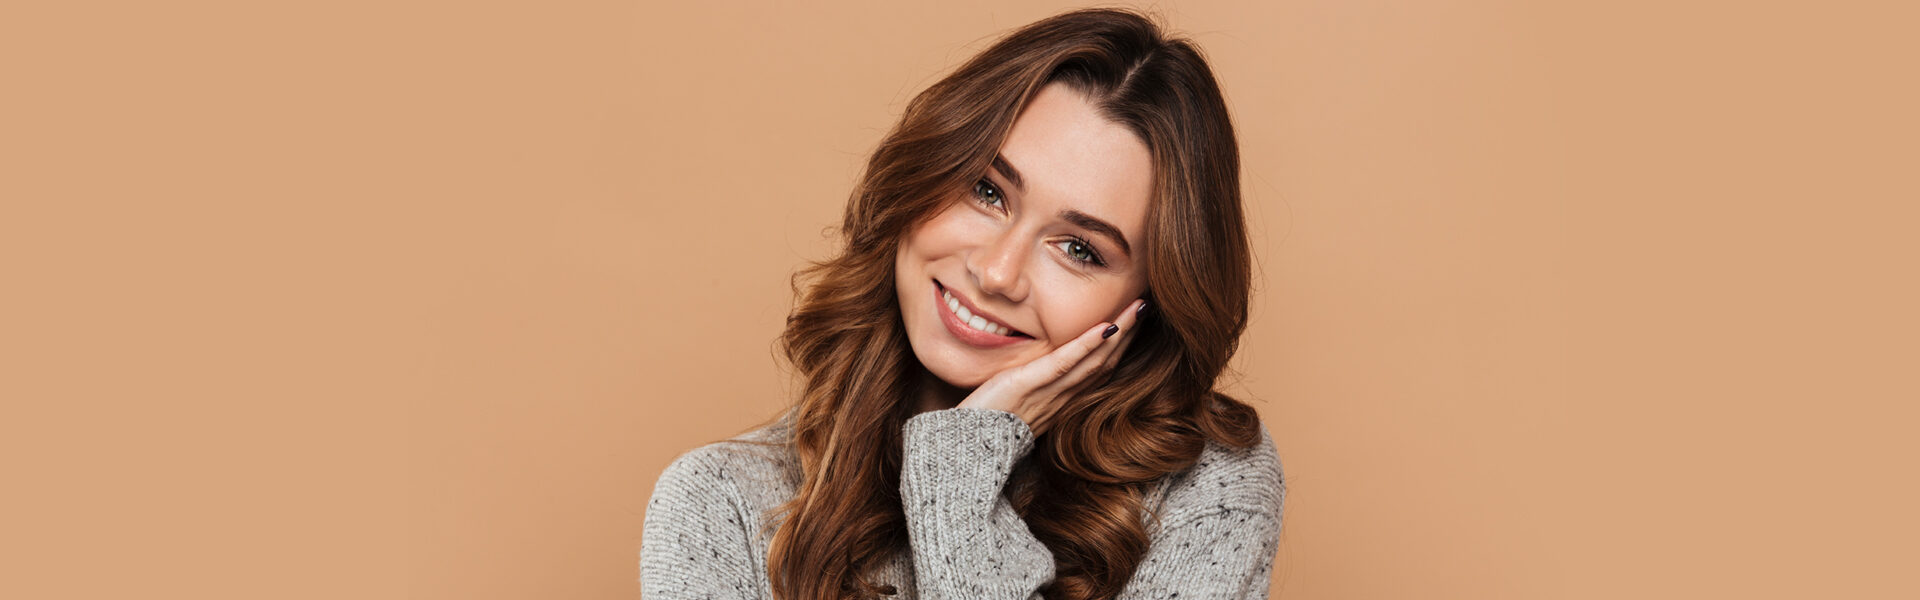 Complete Smile Makeovers in Concord, MA